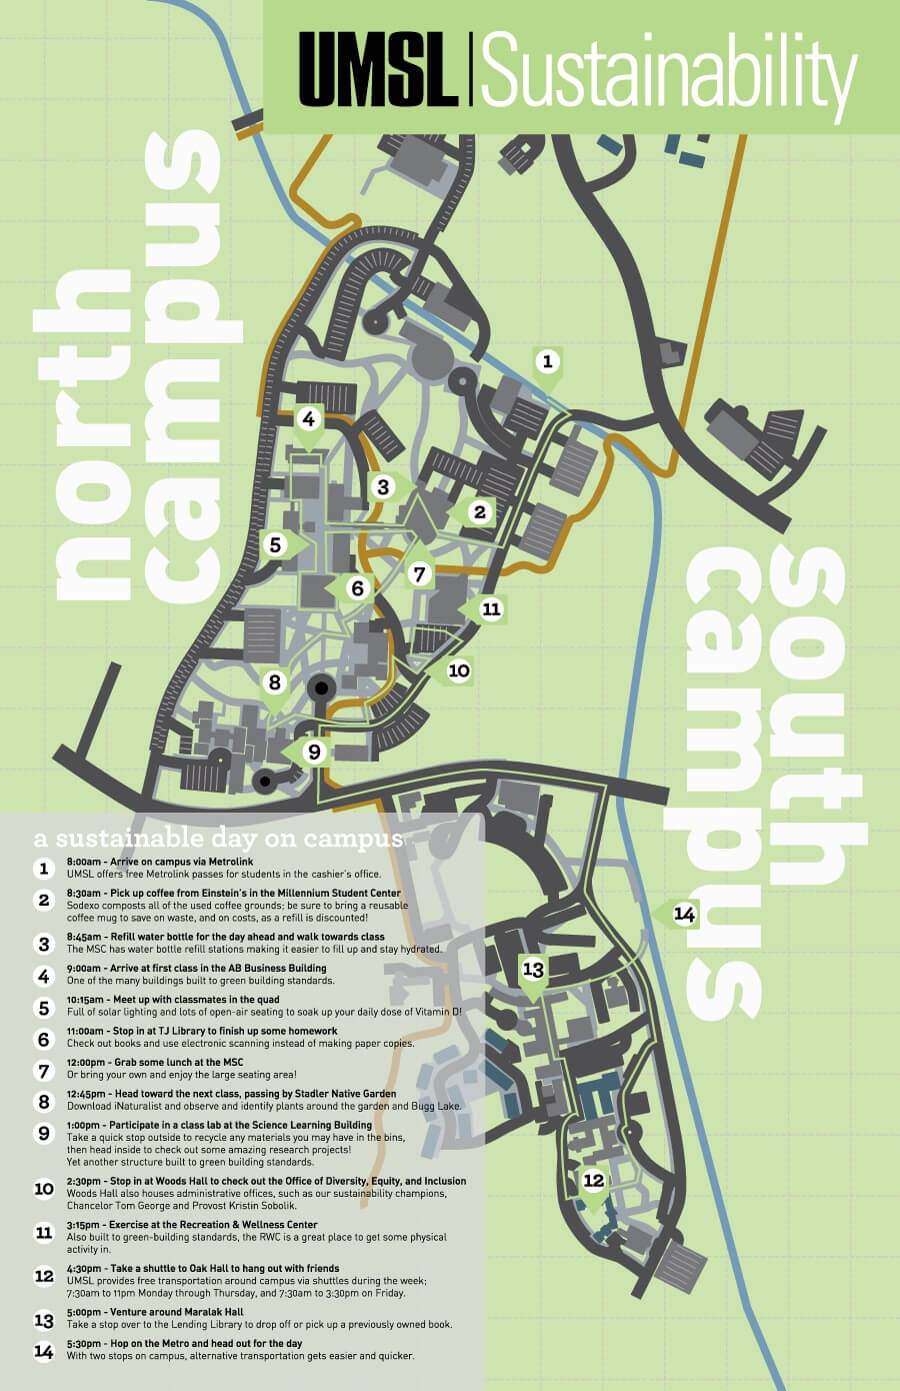 Map Of Sustainability Features On Campus